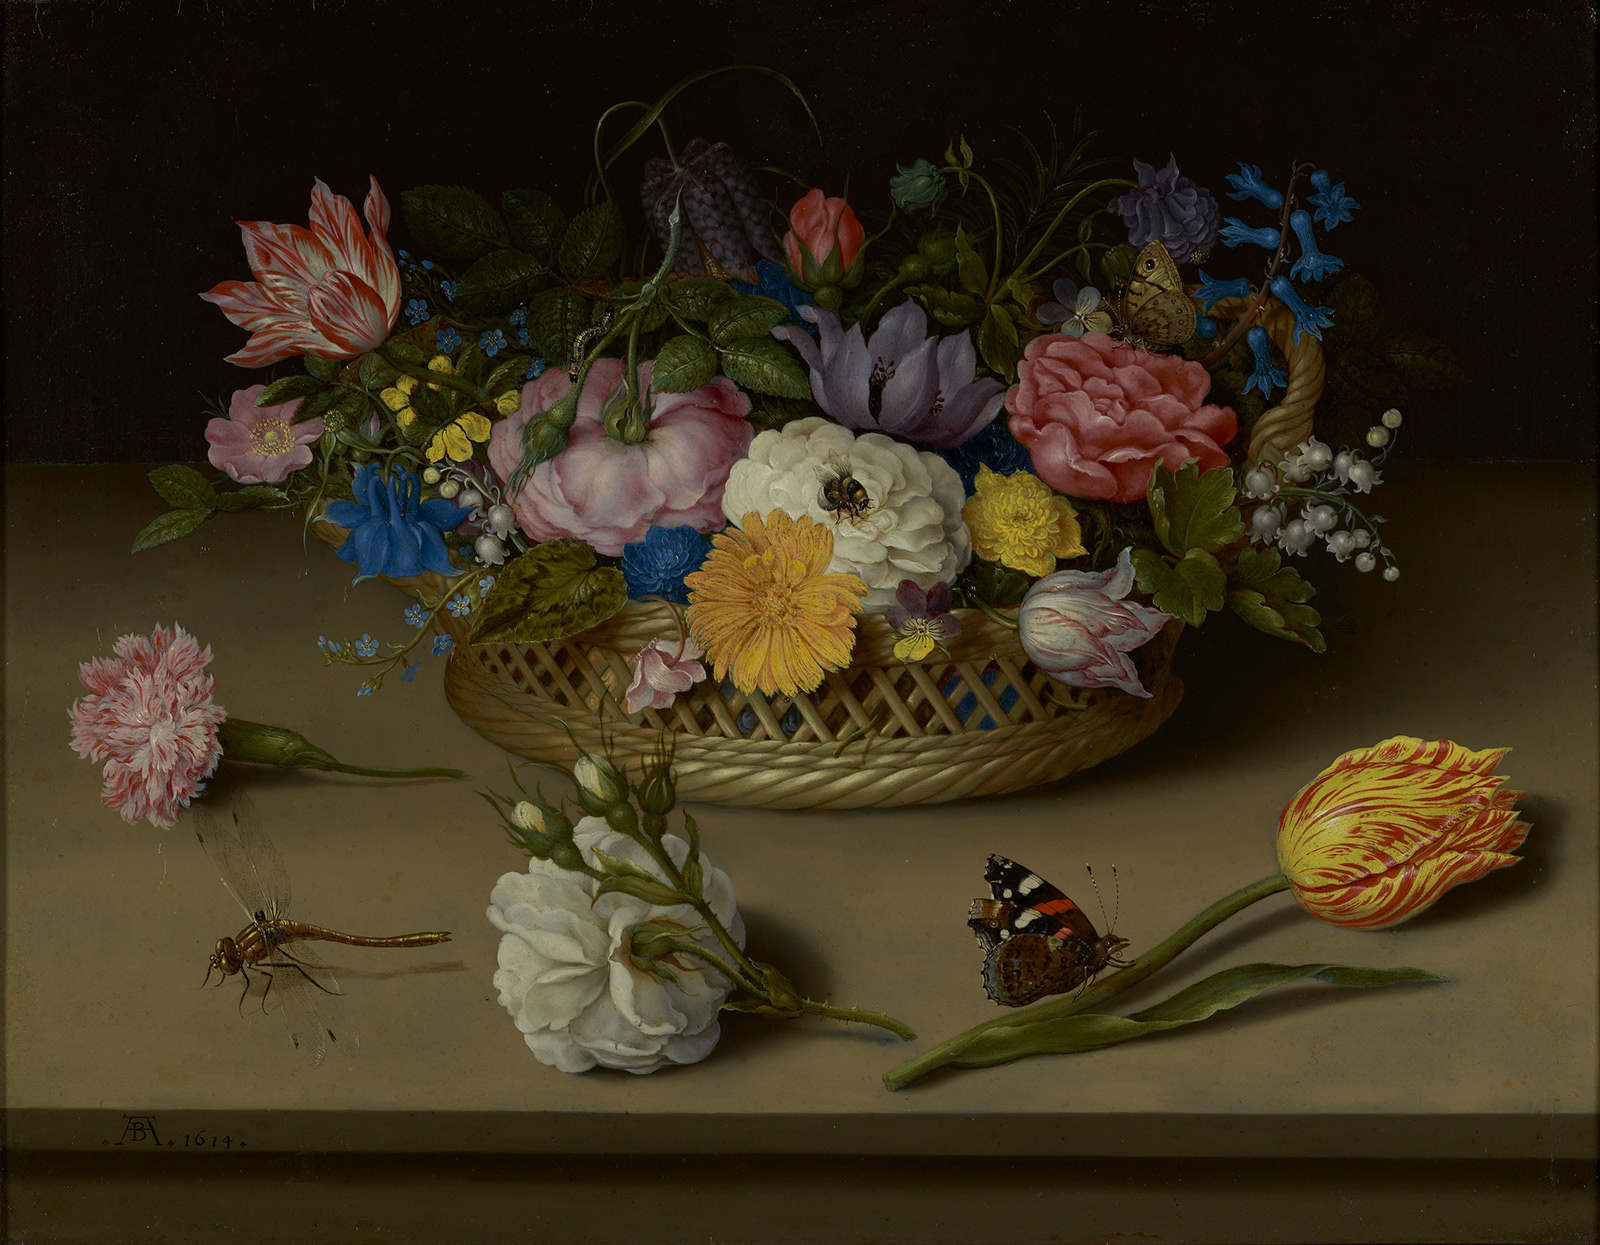 A basket of different types of flowers, in varying colors. Three stemmed flowers lie in the table in front, with a butterfly and a dragonfly.